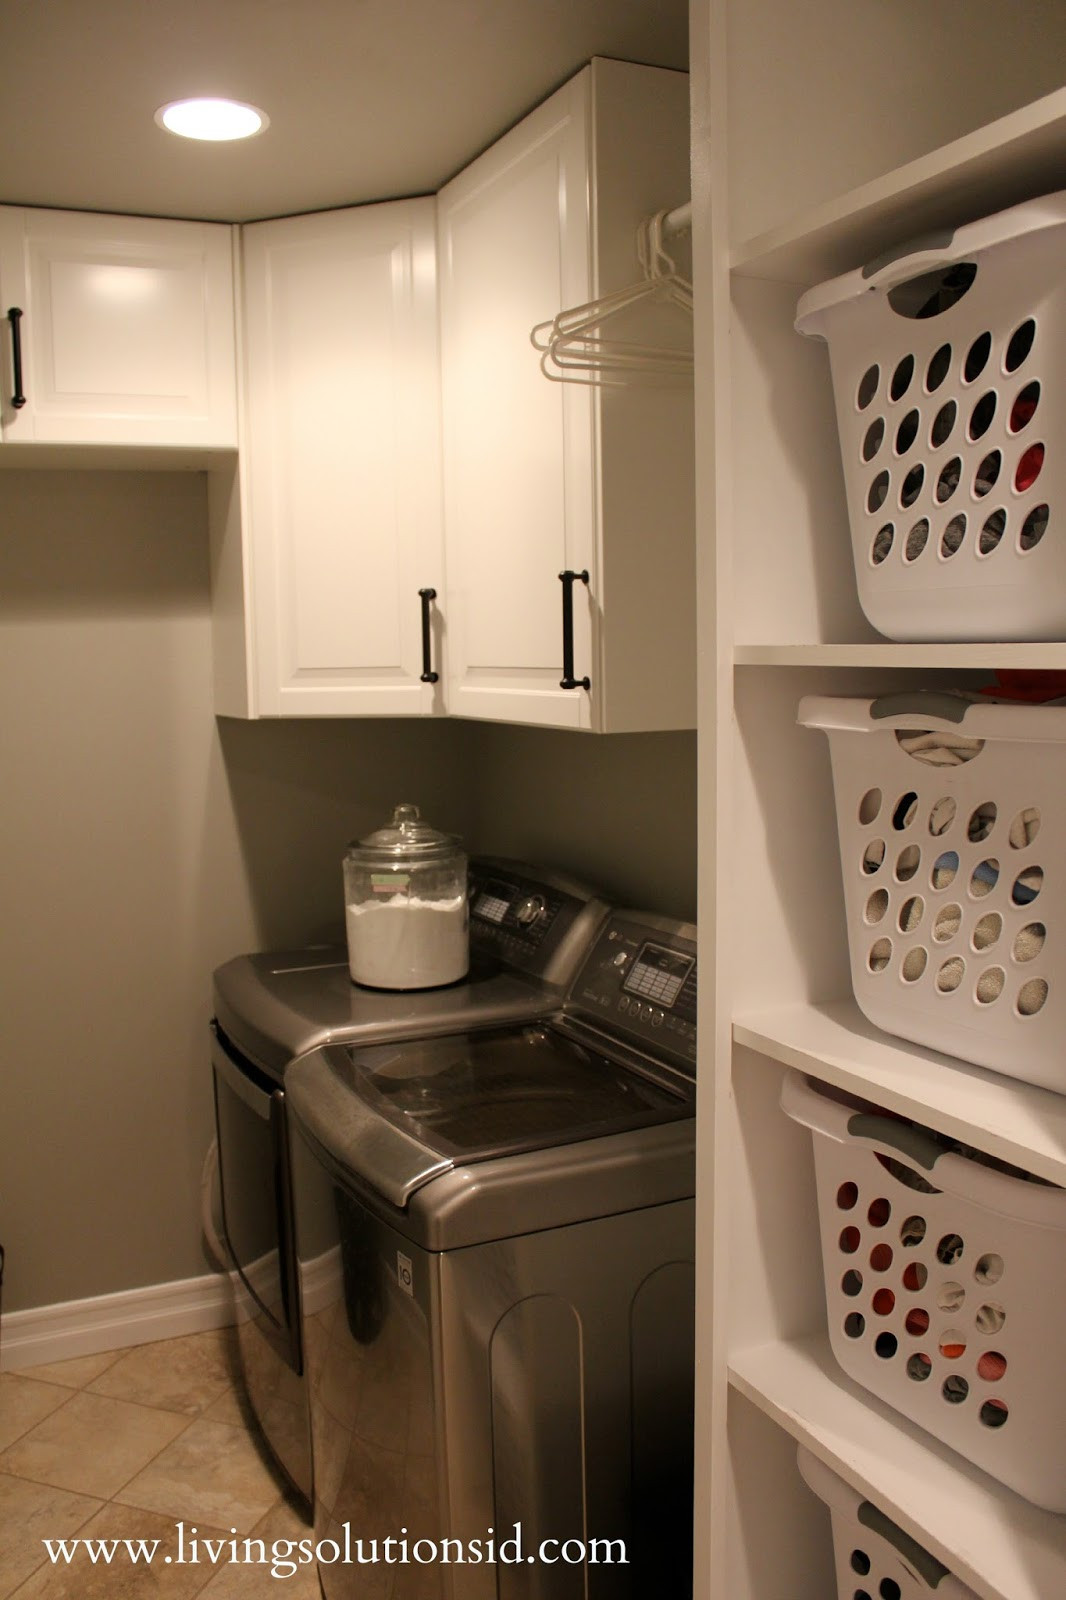 Best ideas about Laundry Room Shelf . Save or Pin The Laundry Room Today Now.